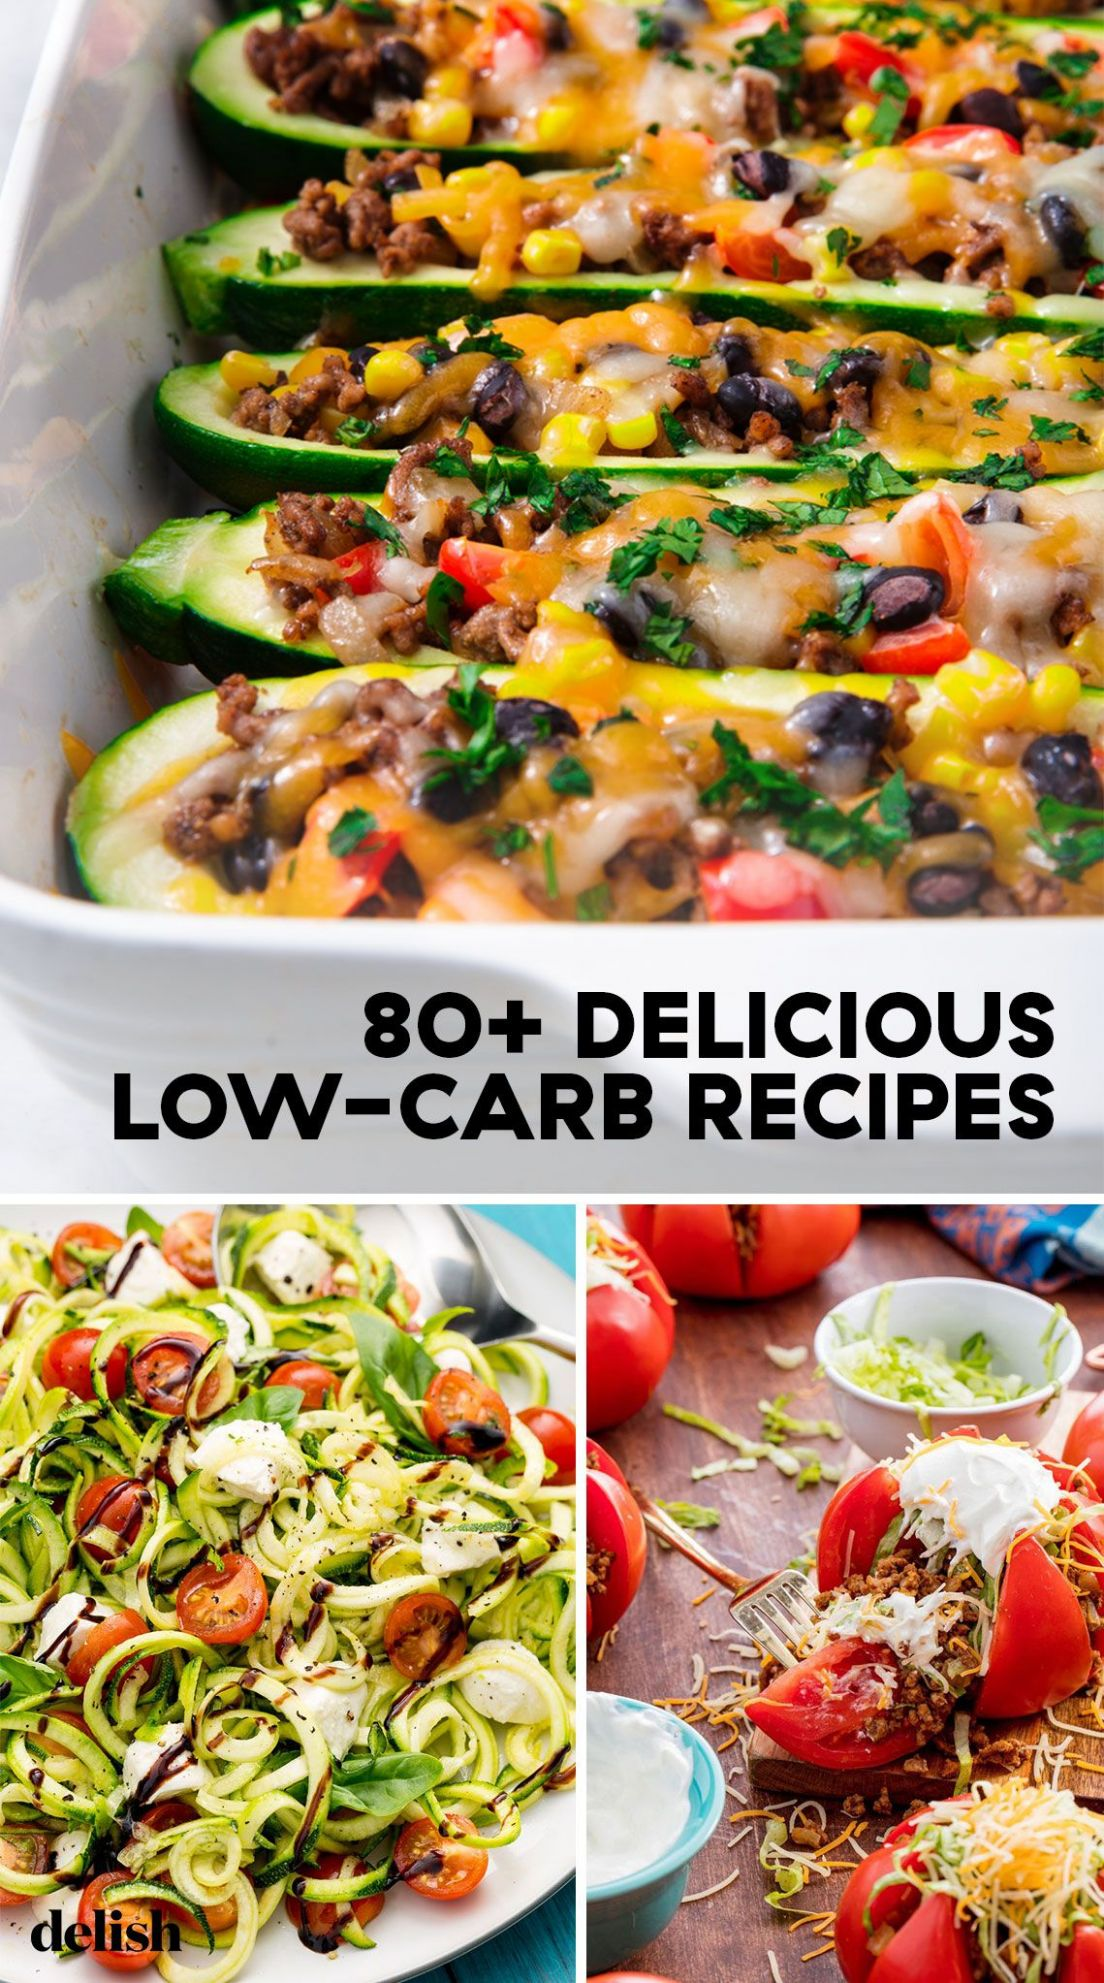 11+ Easy Low Carb Recipes - Best Low Carb Meal Ideas